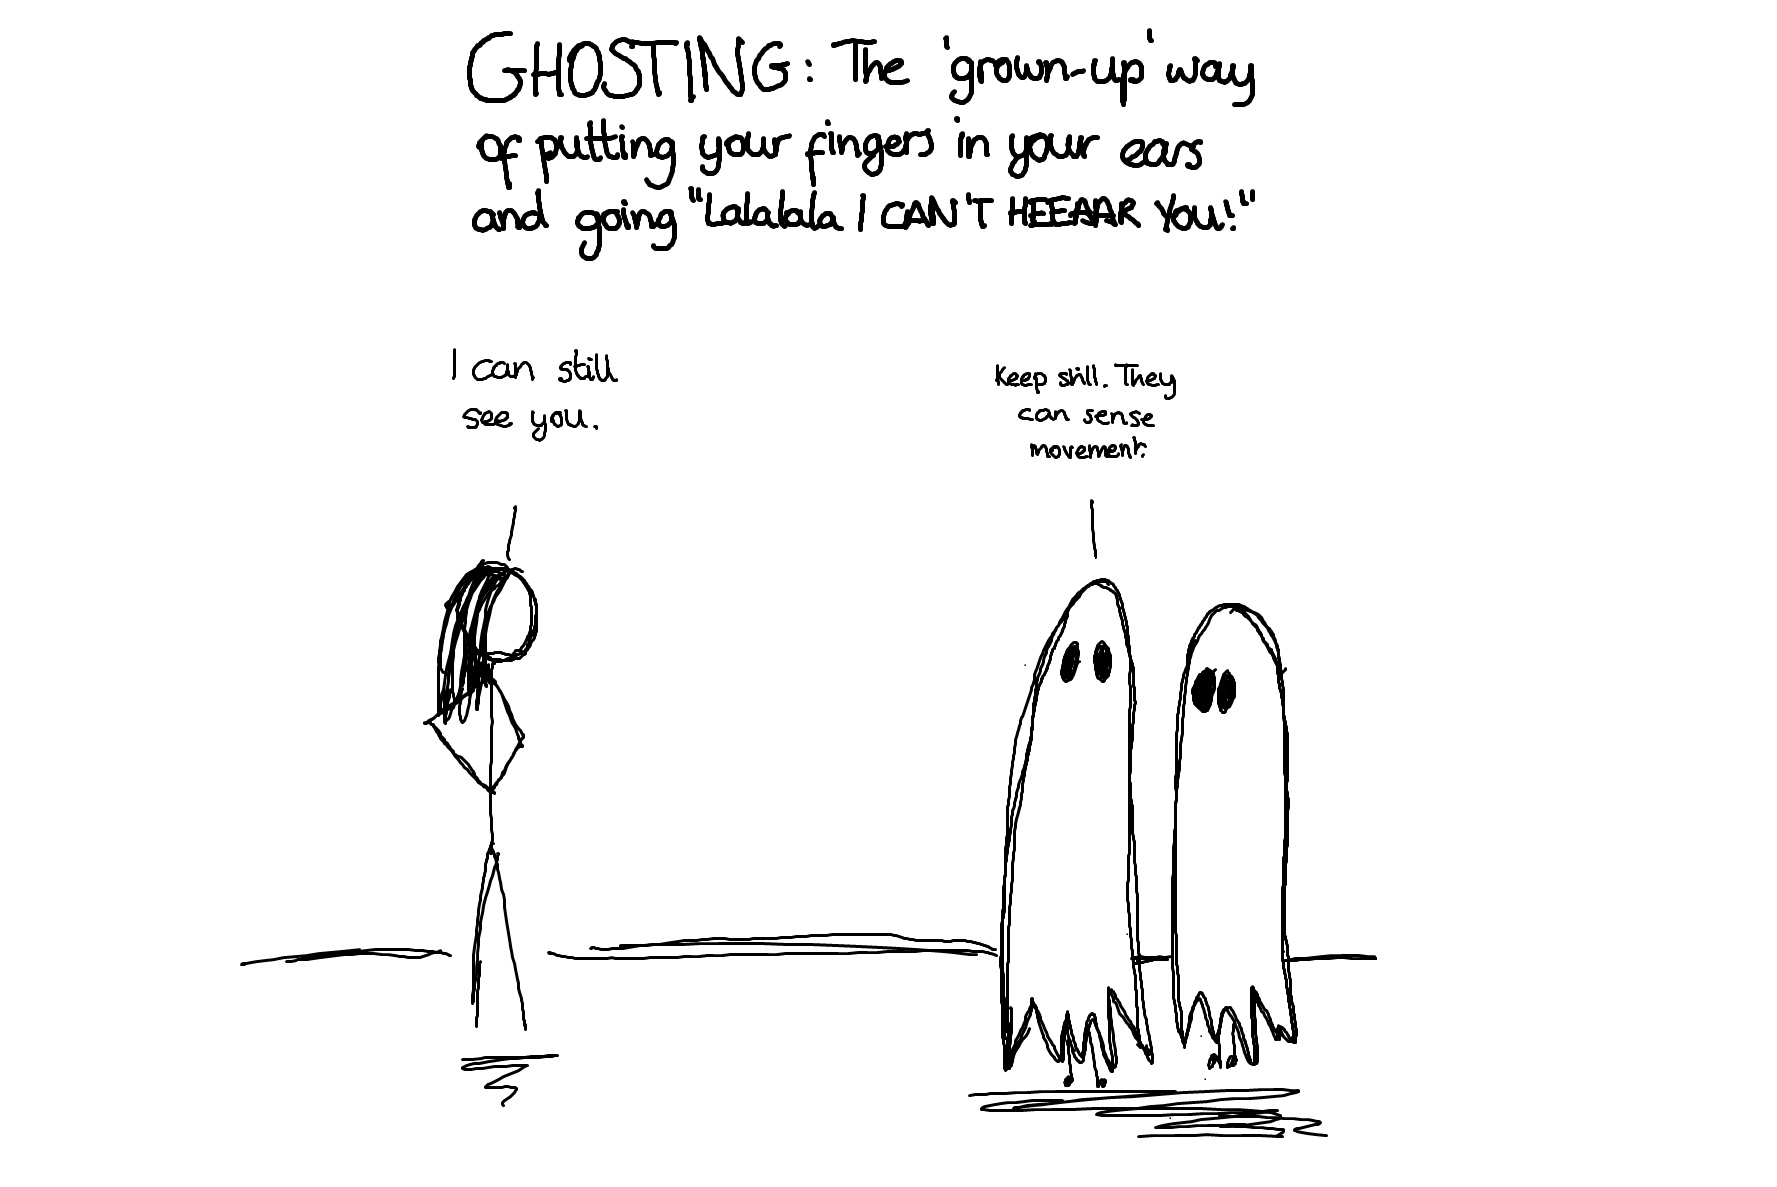 Getting ghosted is not fun.